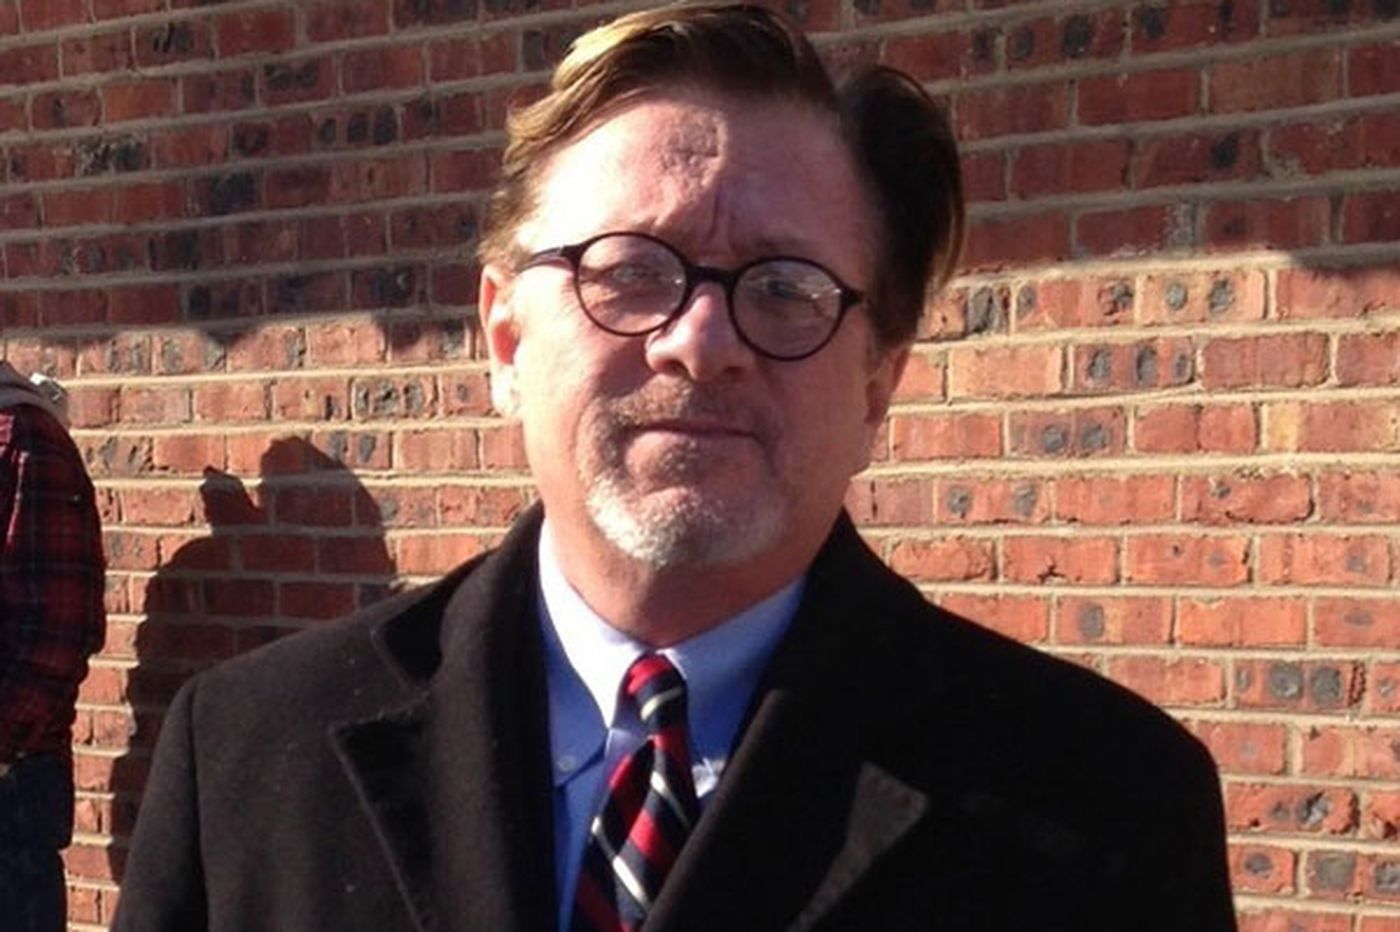 Montco lawyer waives preliminary hearing on drug charges